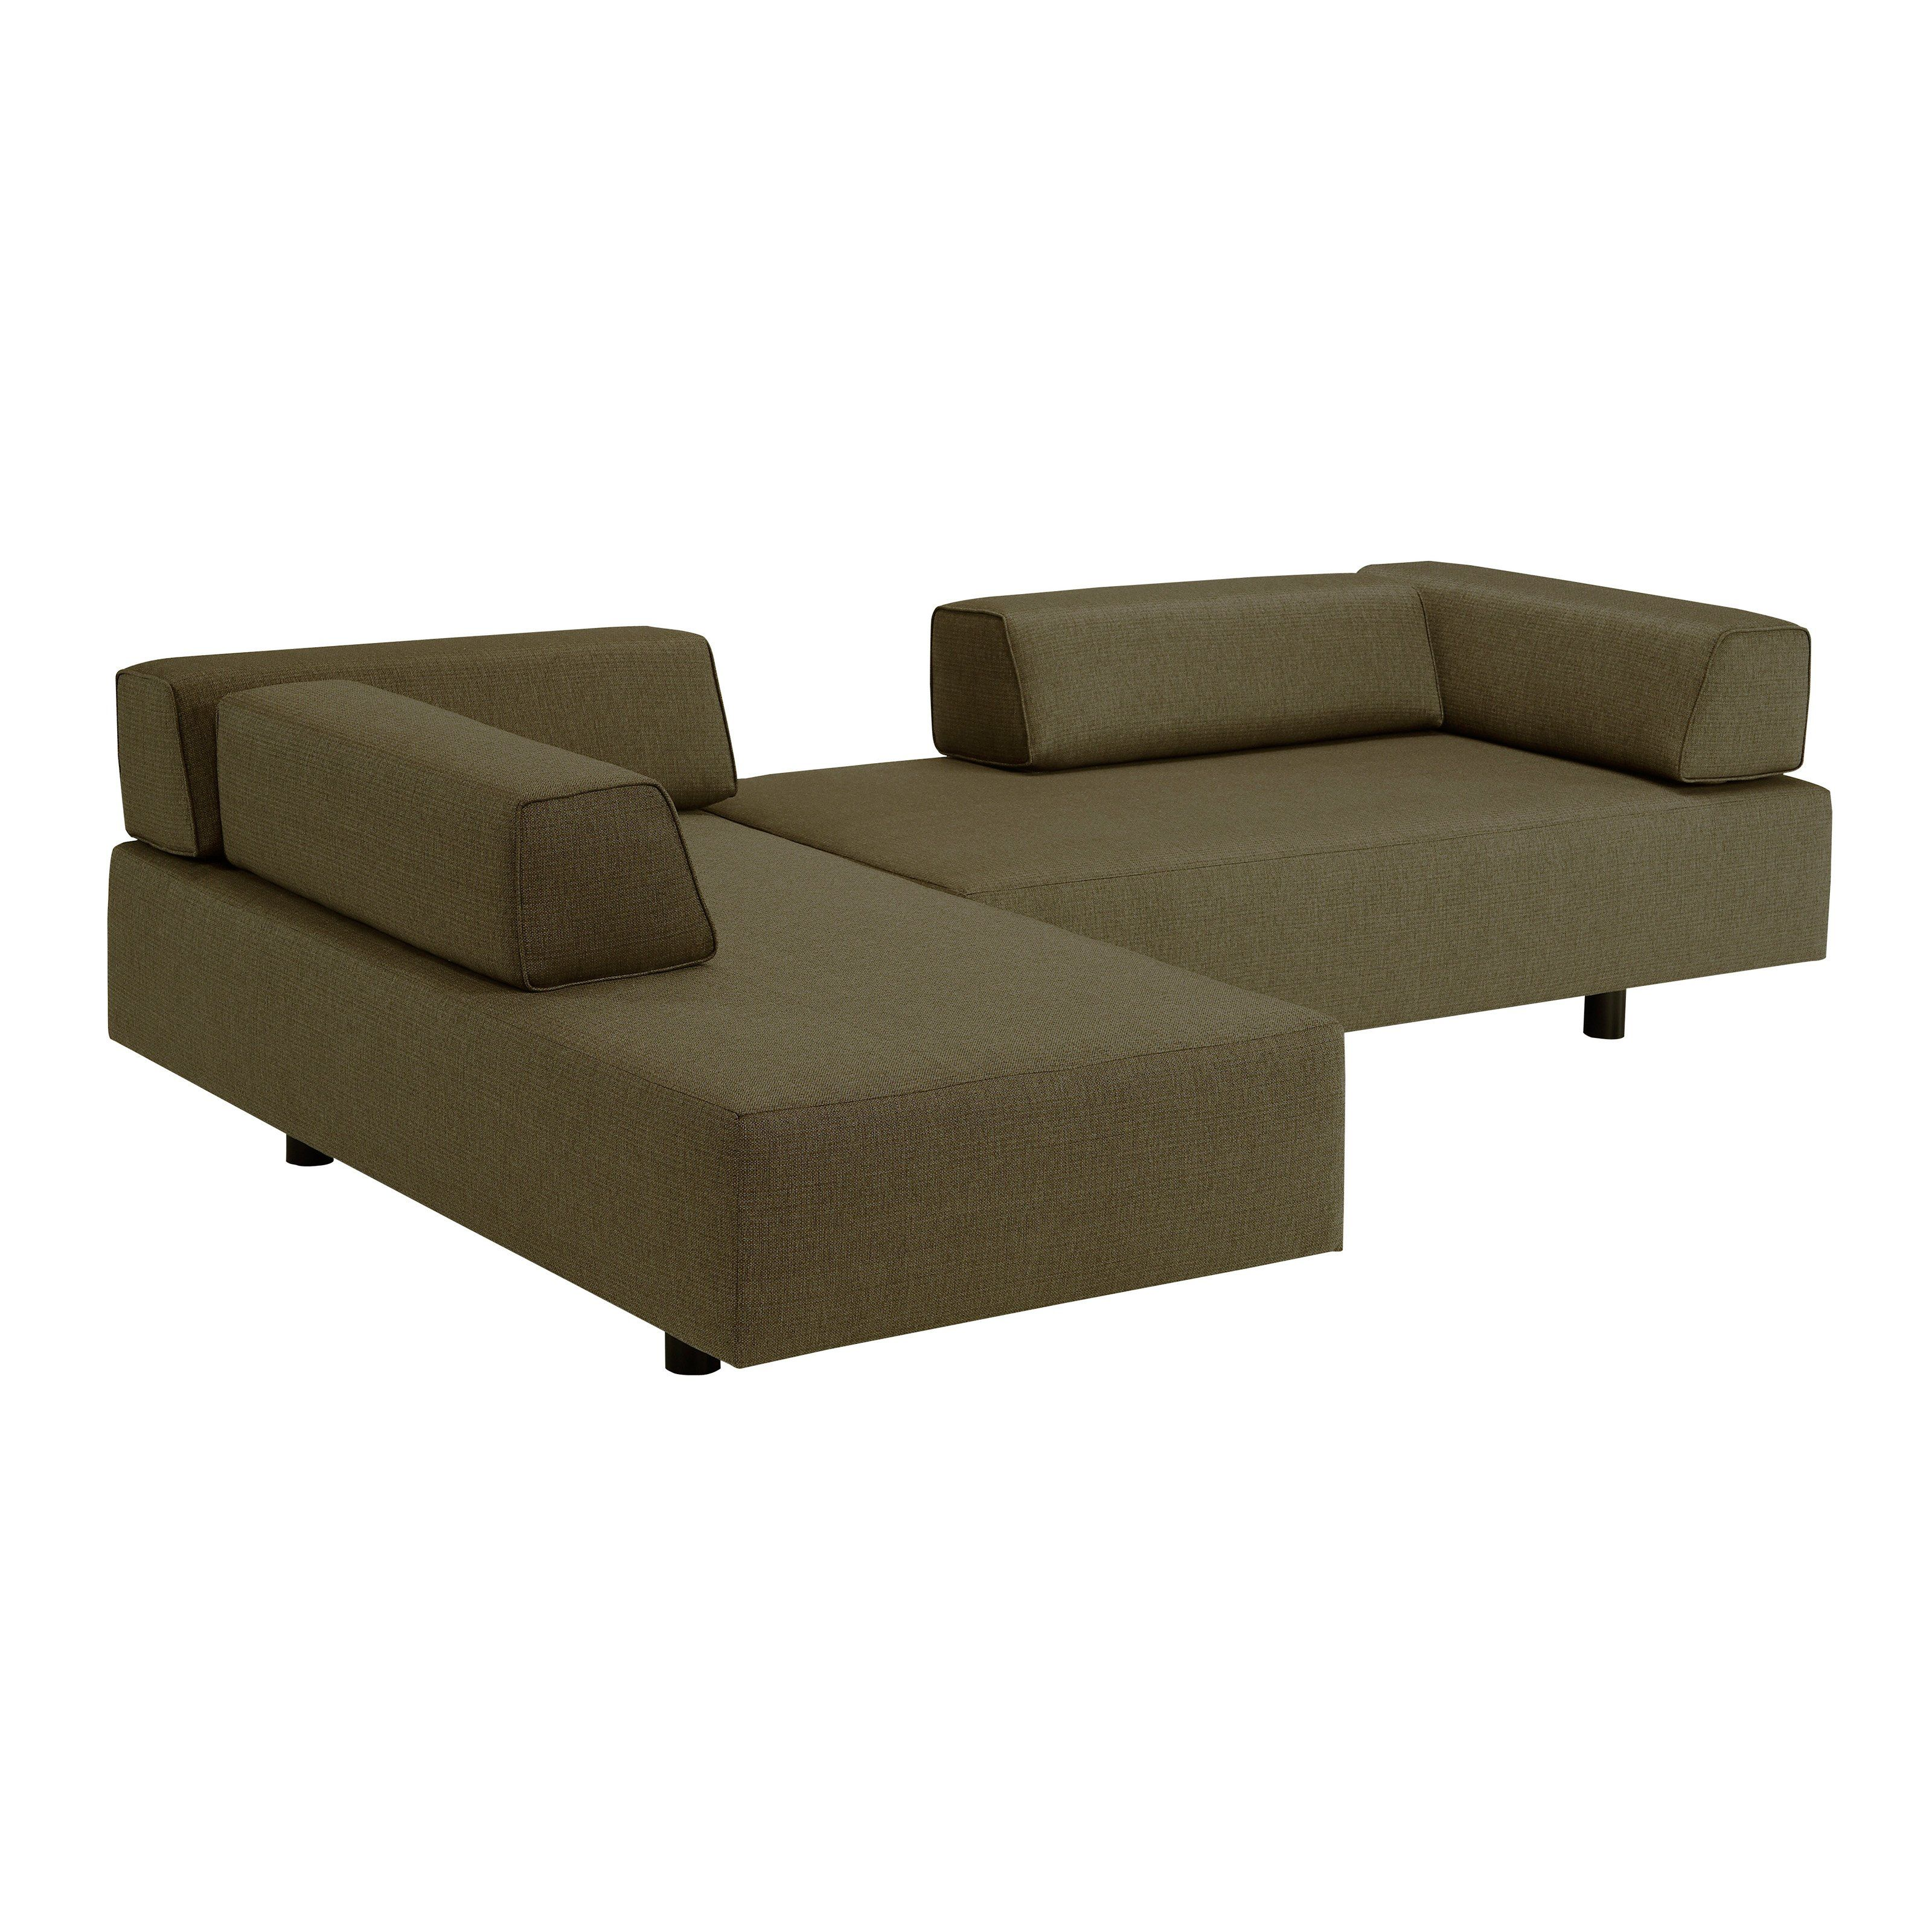 Lazar Calabasas Upholstered Sofa with Movable Bolster Back